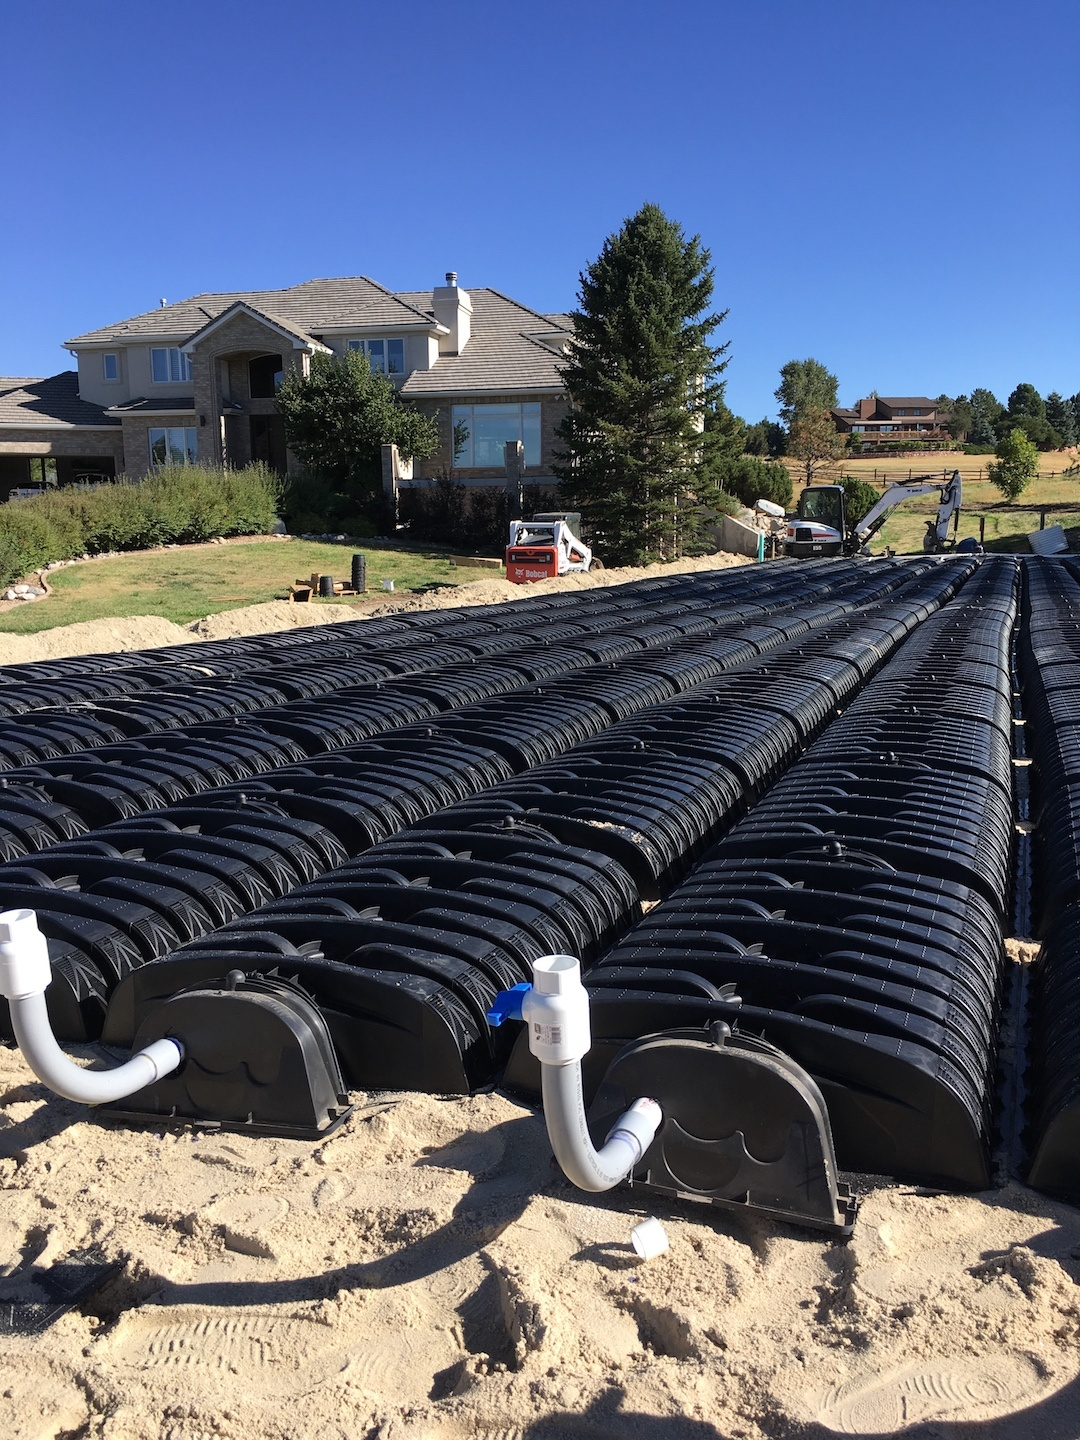 Douglas County, CO Home septic drainfield